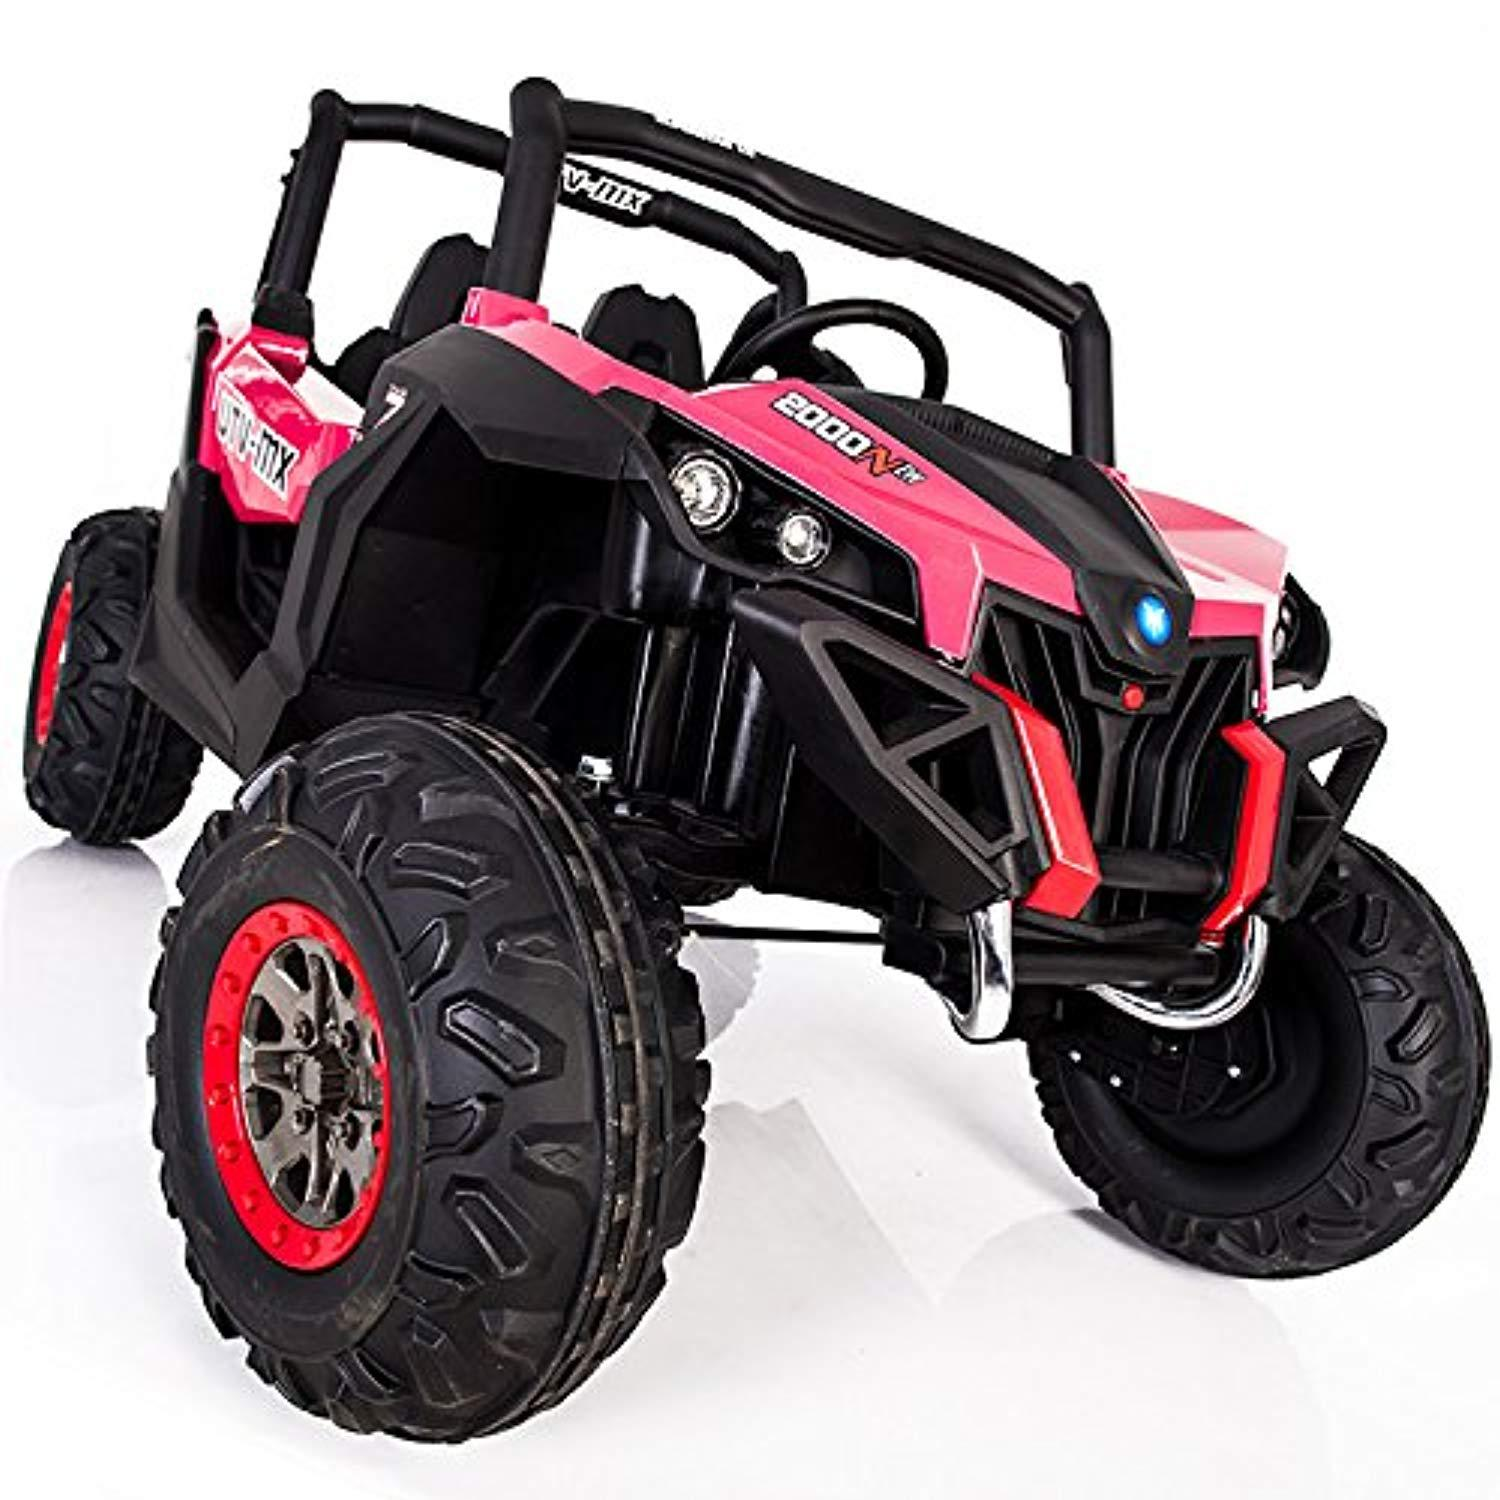 2 Seater Buggy Quad Bike All Wheels 4WD Drive Ride On Kids Electric Toy Car 2x12V Battery Powered LED Lights MP3 USB RC Parental Remote Green